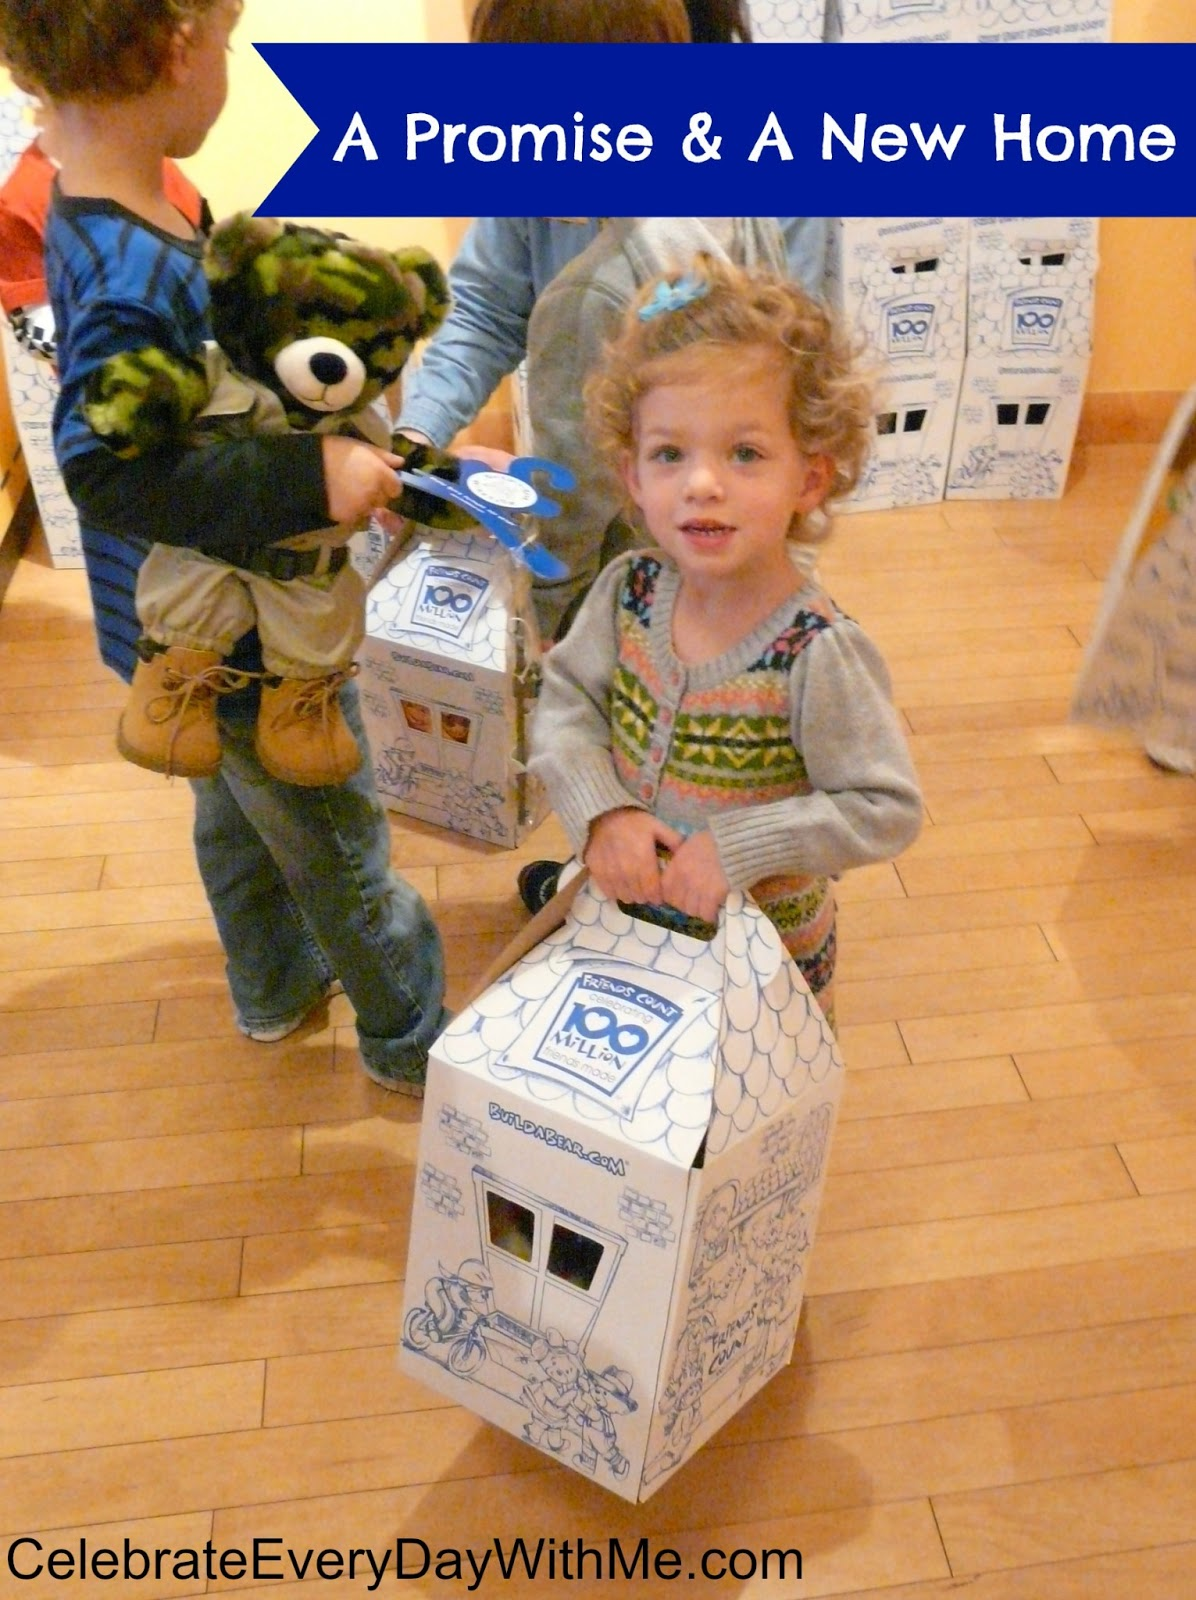 They were given birth certificates and the well-recognized Build-A-Bear Workshop box.  sc 1 st  Celebrate Every Day With Me & Childrenu0027s Day Party at Build-A-Bear Workshop | Celebrate Every ... Aboutintivar.Com